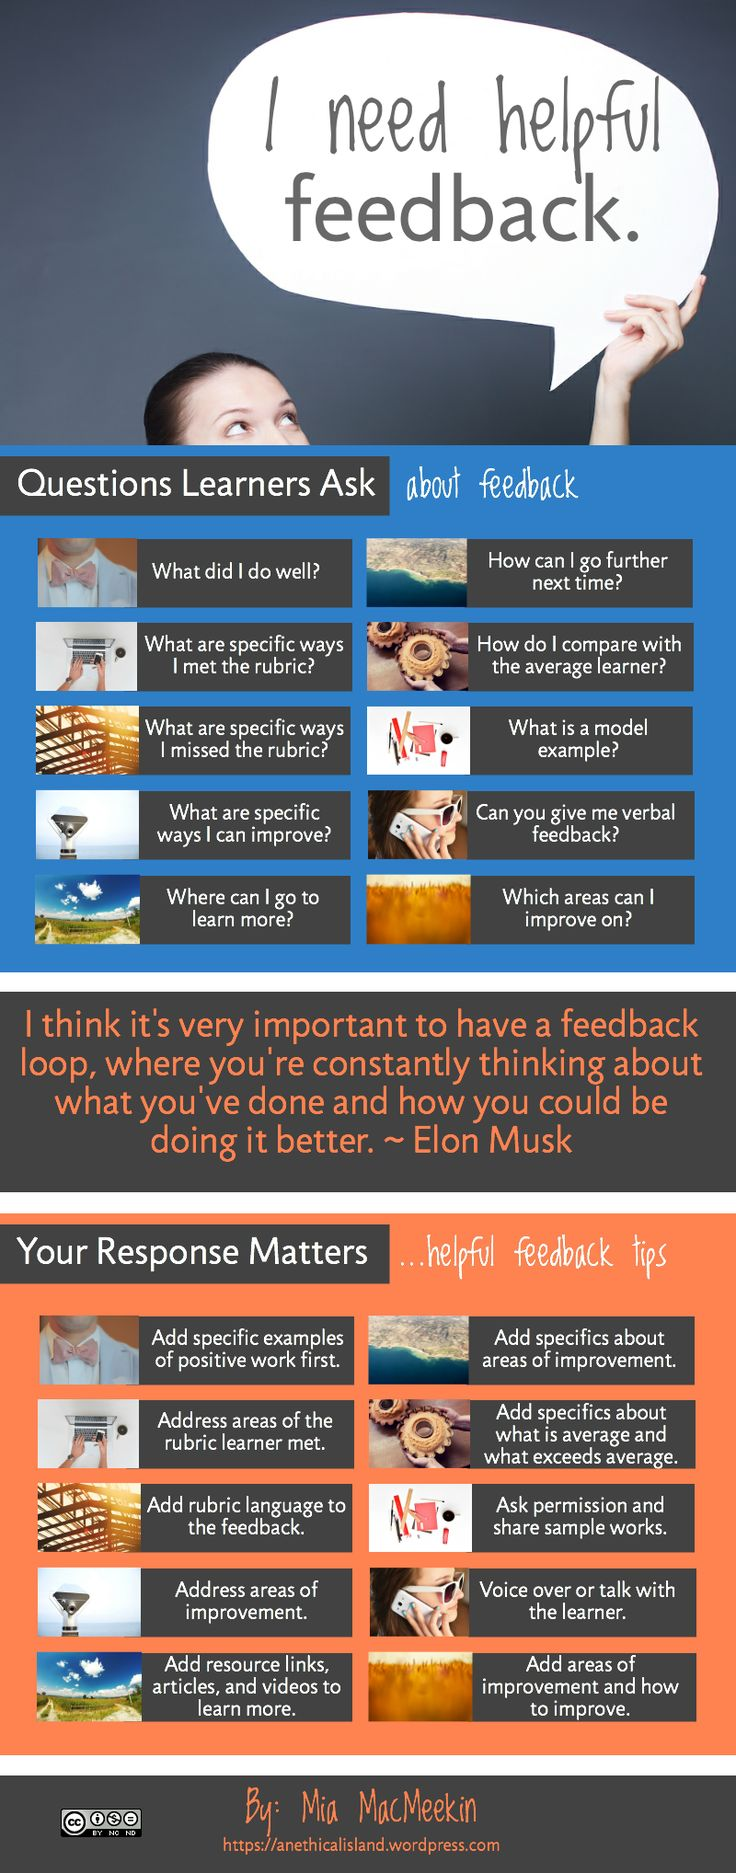 Questions students ask about feedback.